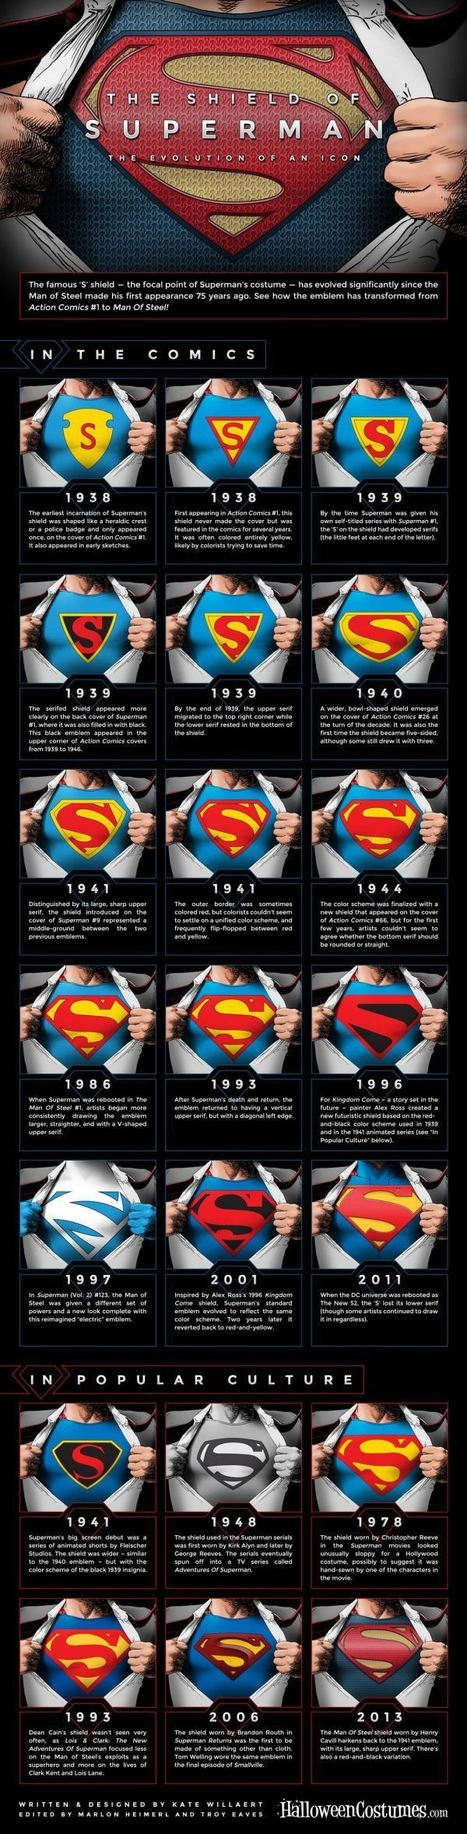 The Evolution of Superman's Shield | All Geeks | Scoop.it